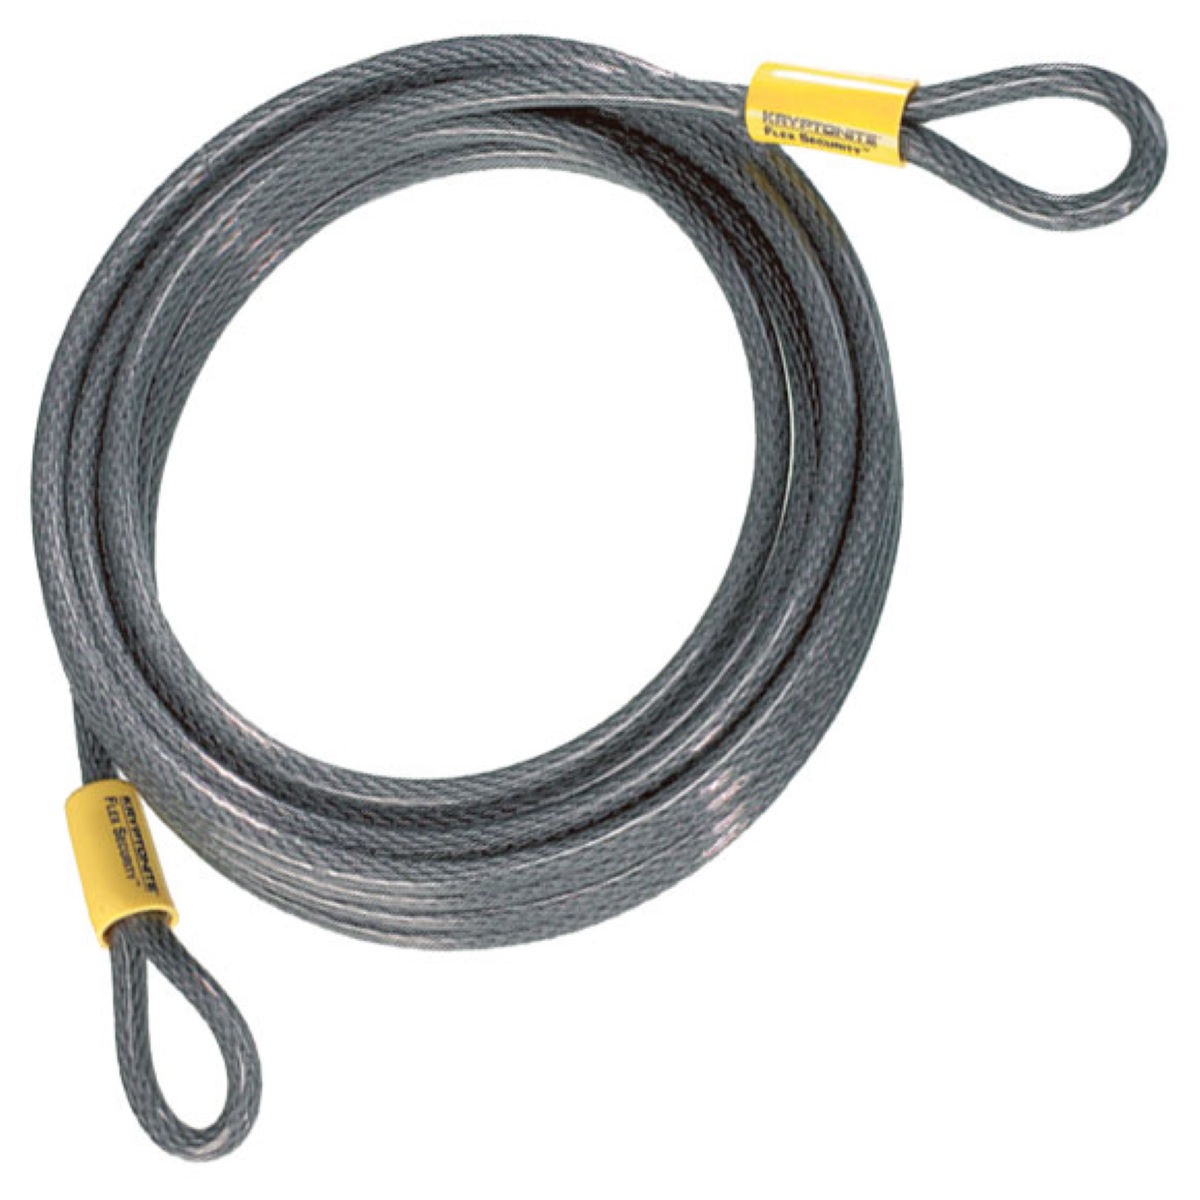 Kryptonite KryptoFlex 30 Foot Cable Bike Lock